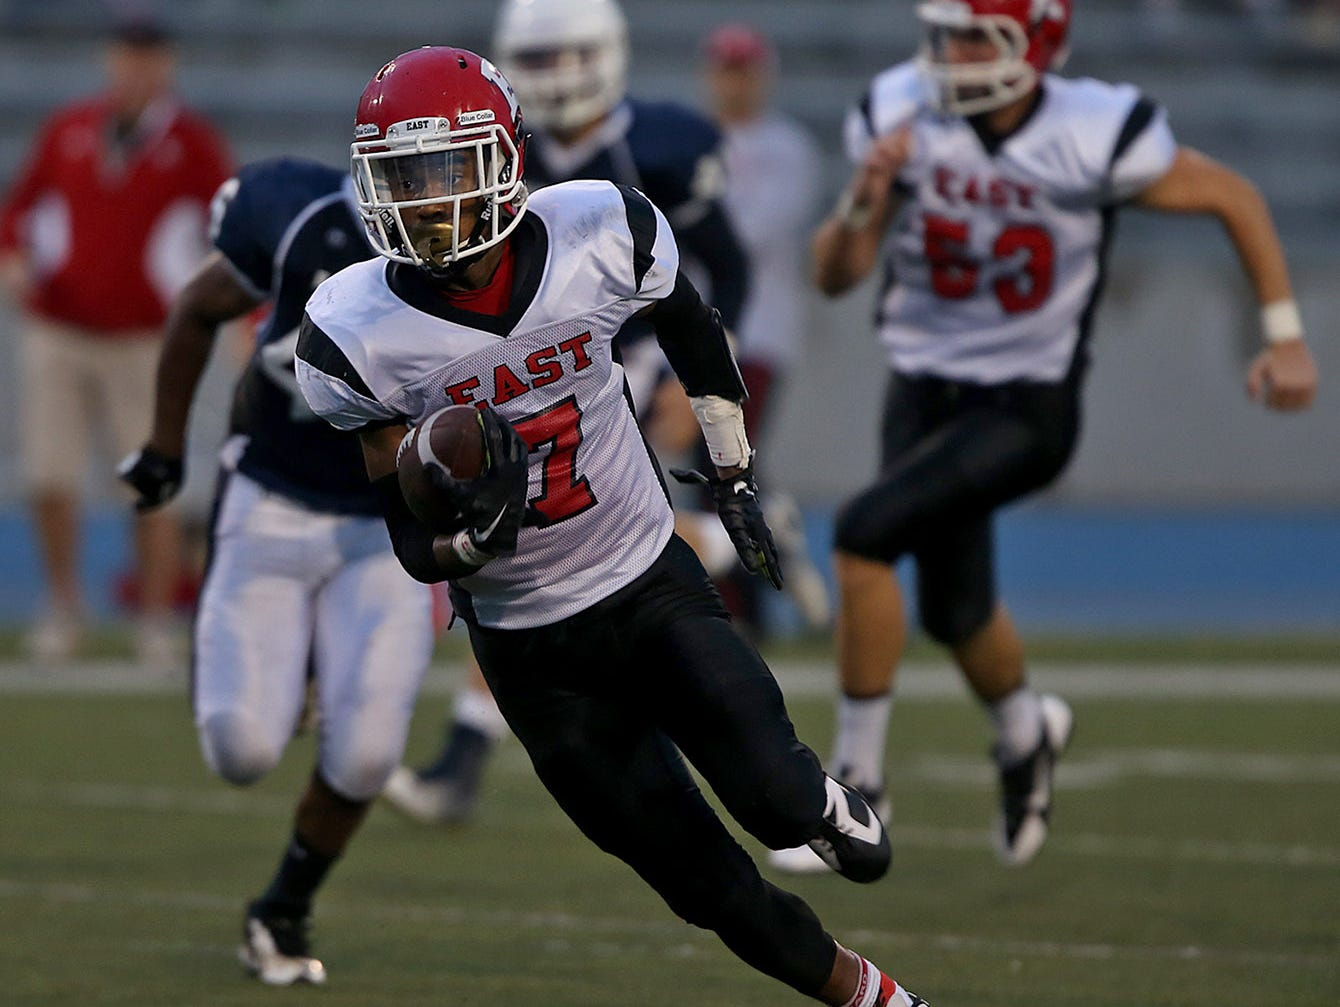 East junior Gerald Sama has returned two punts for touchdowns and rushed in another score for the playoff-bound Scarlets.